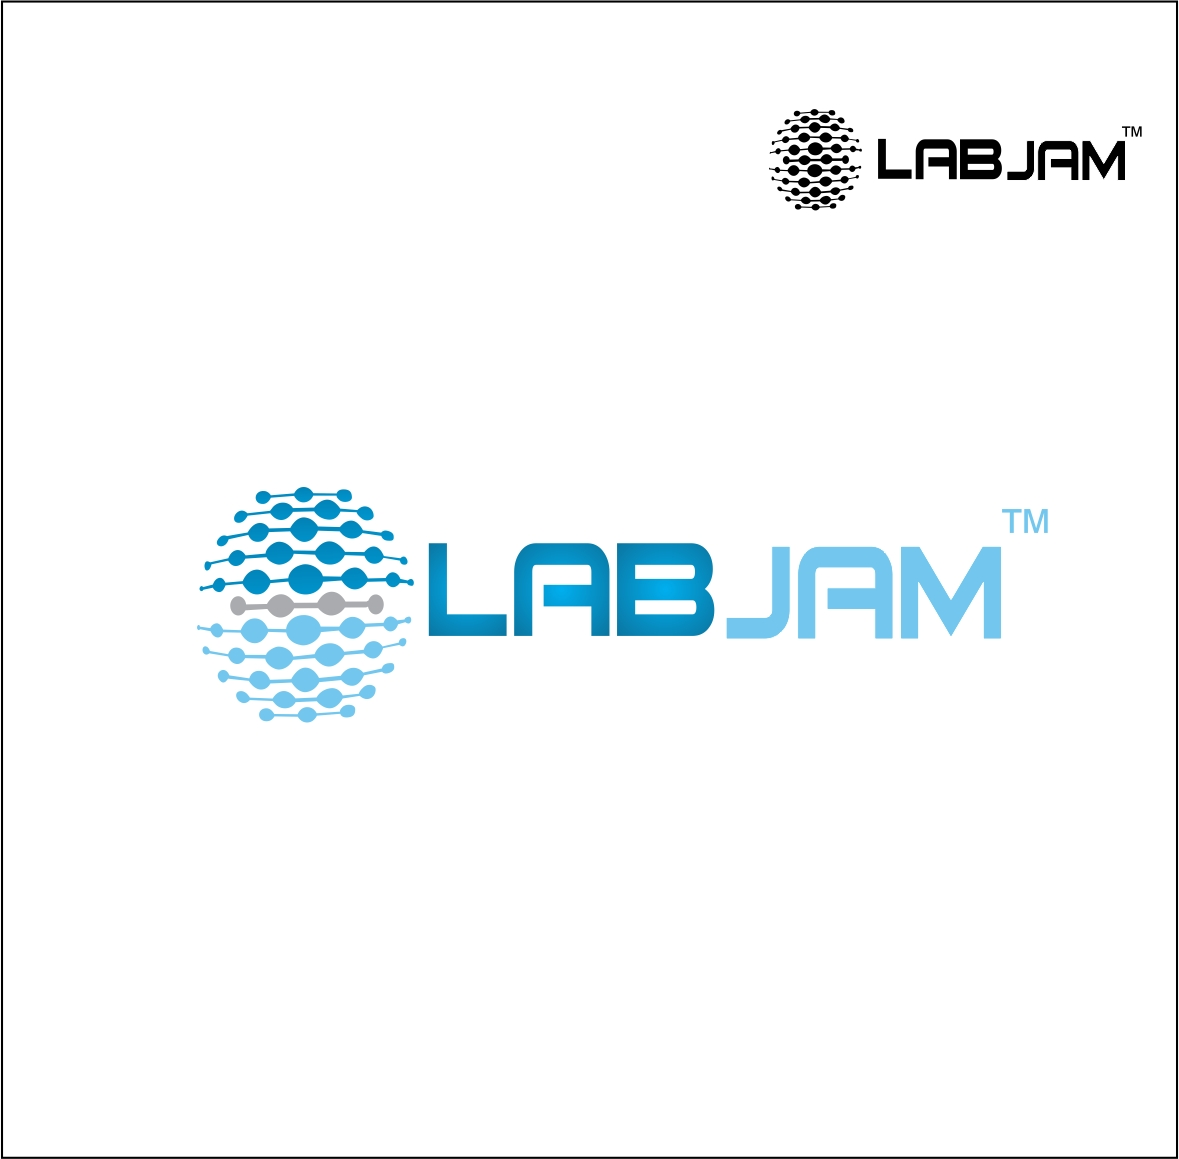 Logo Design by arkvisdesigns - Entry No. 156 in the Logo Design Contest Labjam.